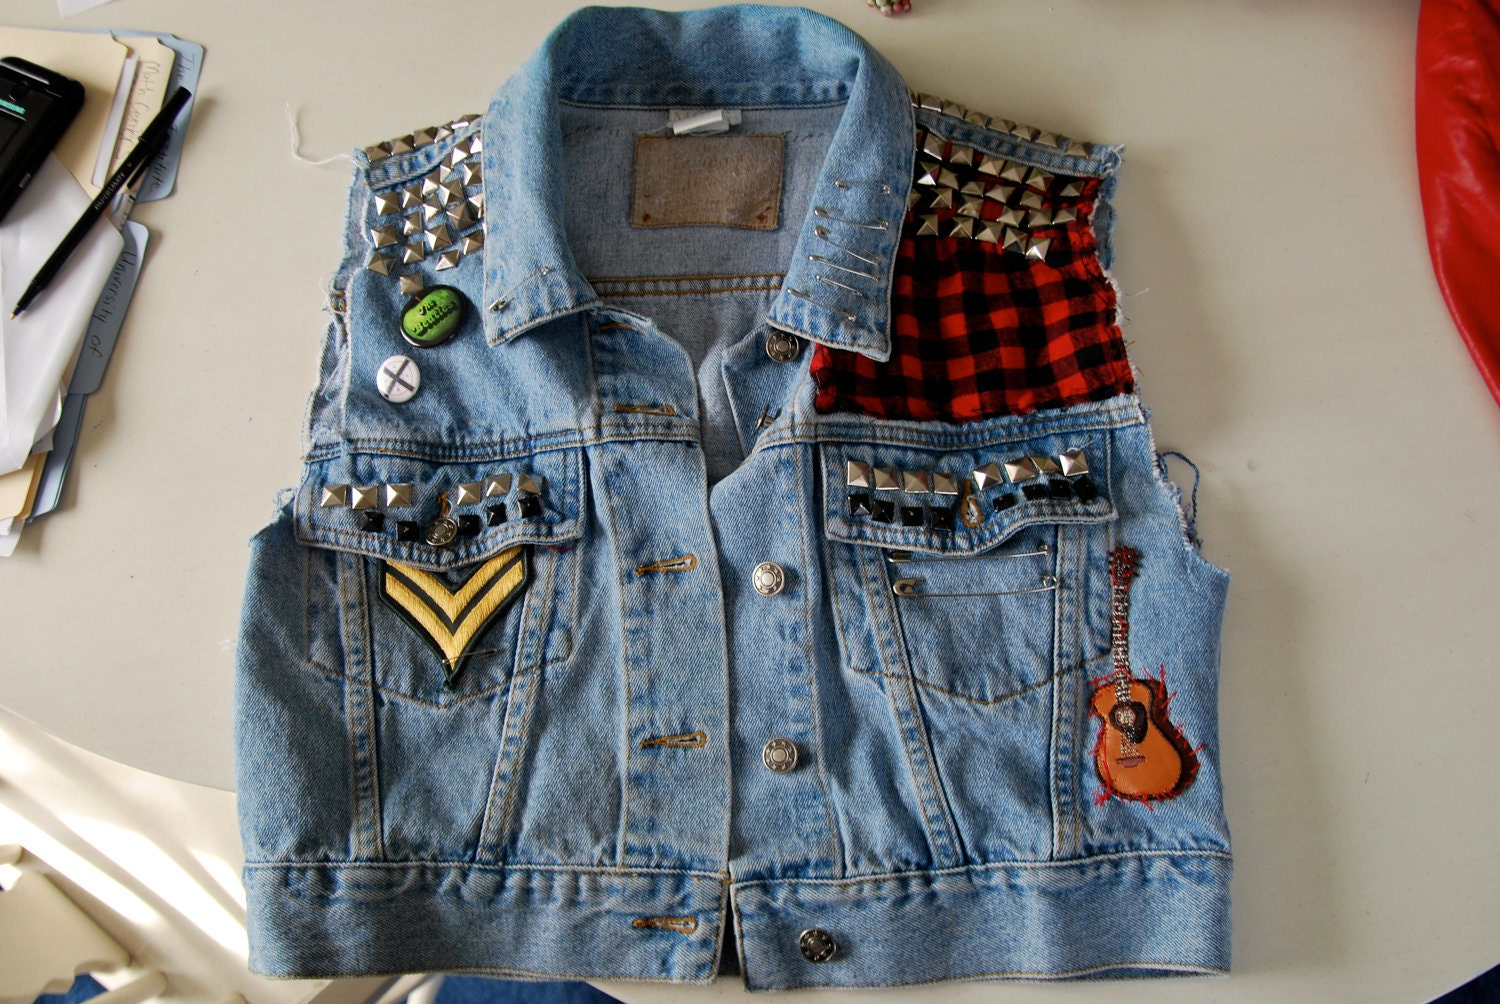 Punk Led Zeppelin Denim Jacket With Patches